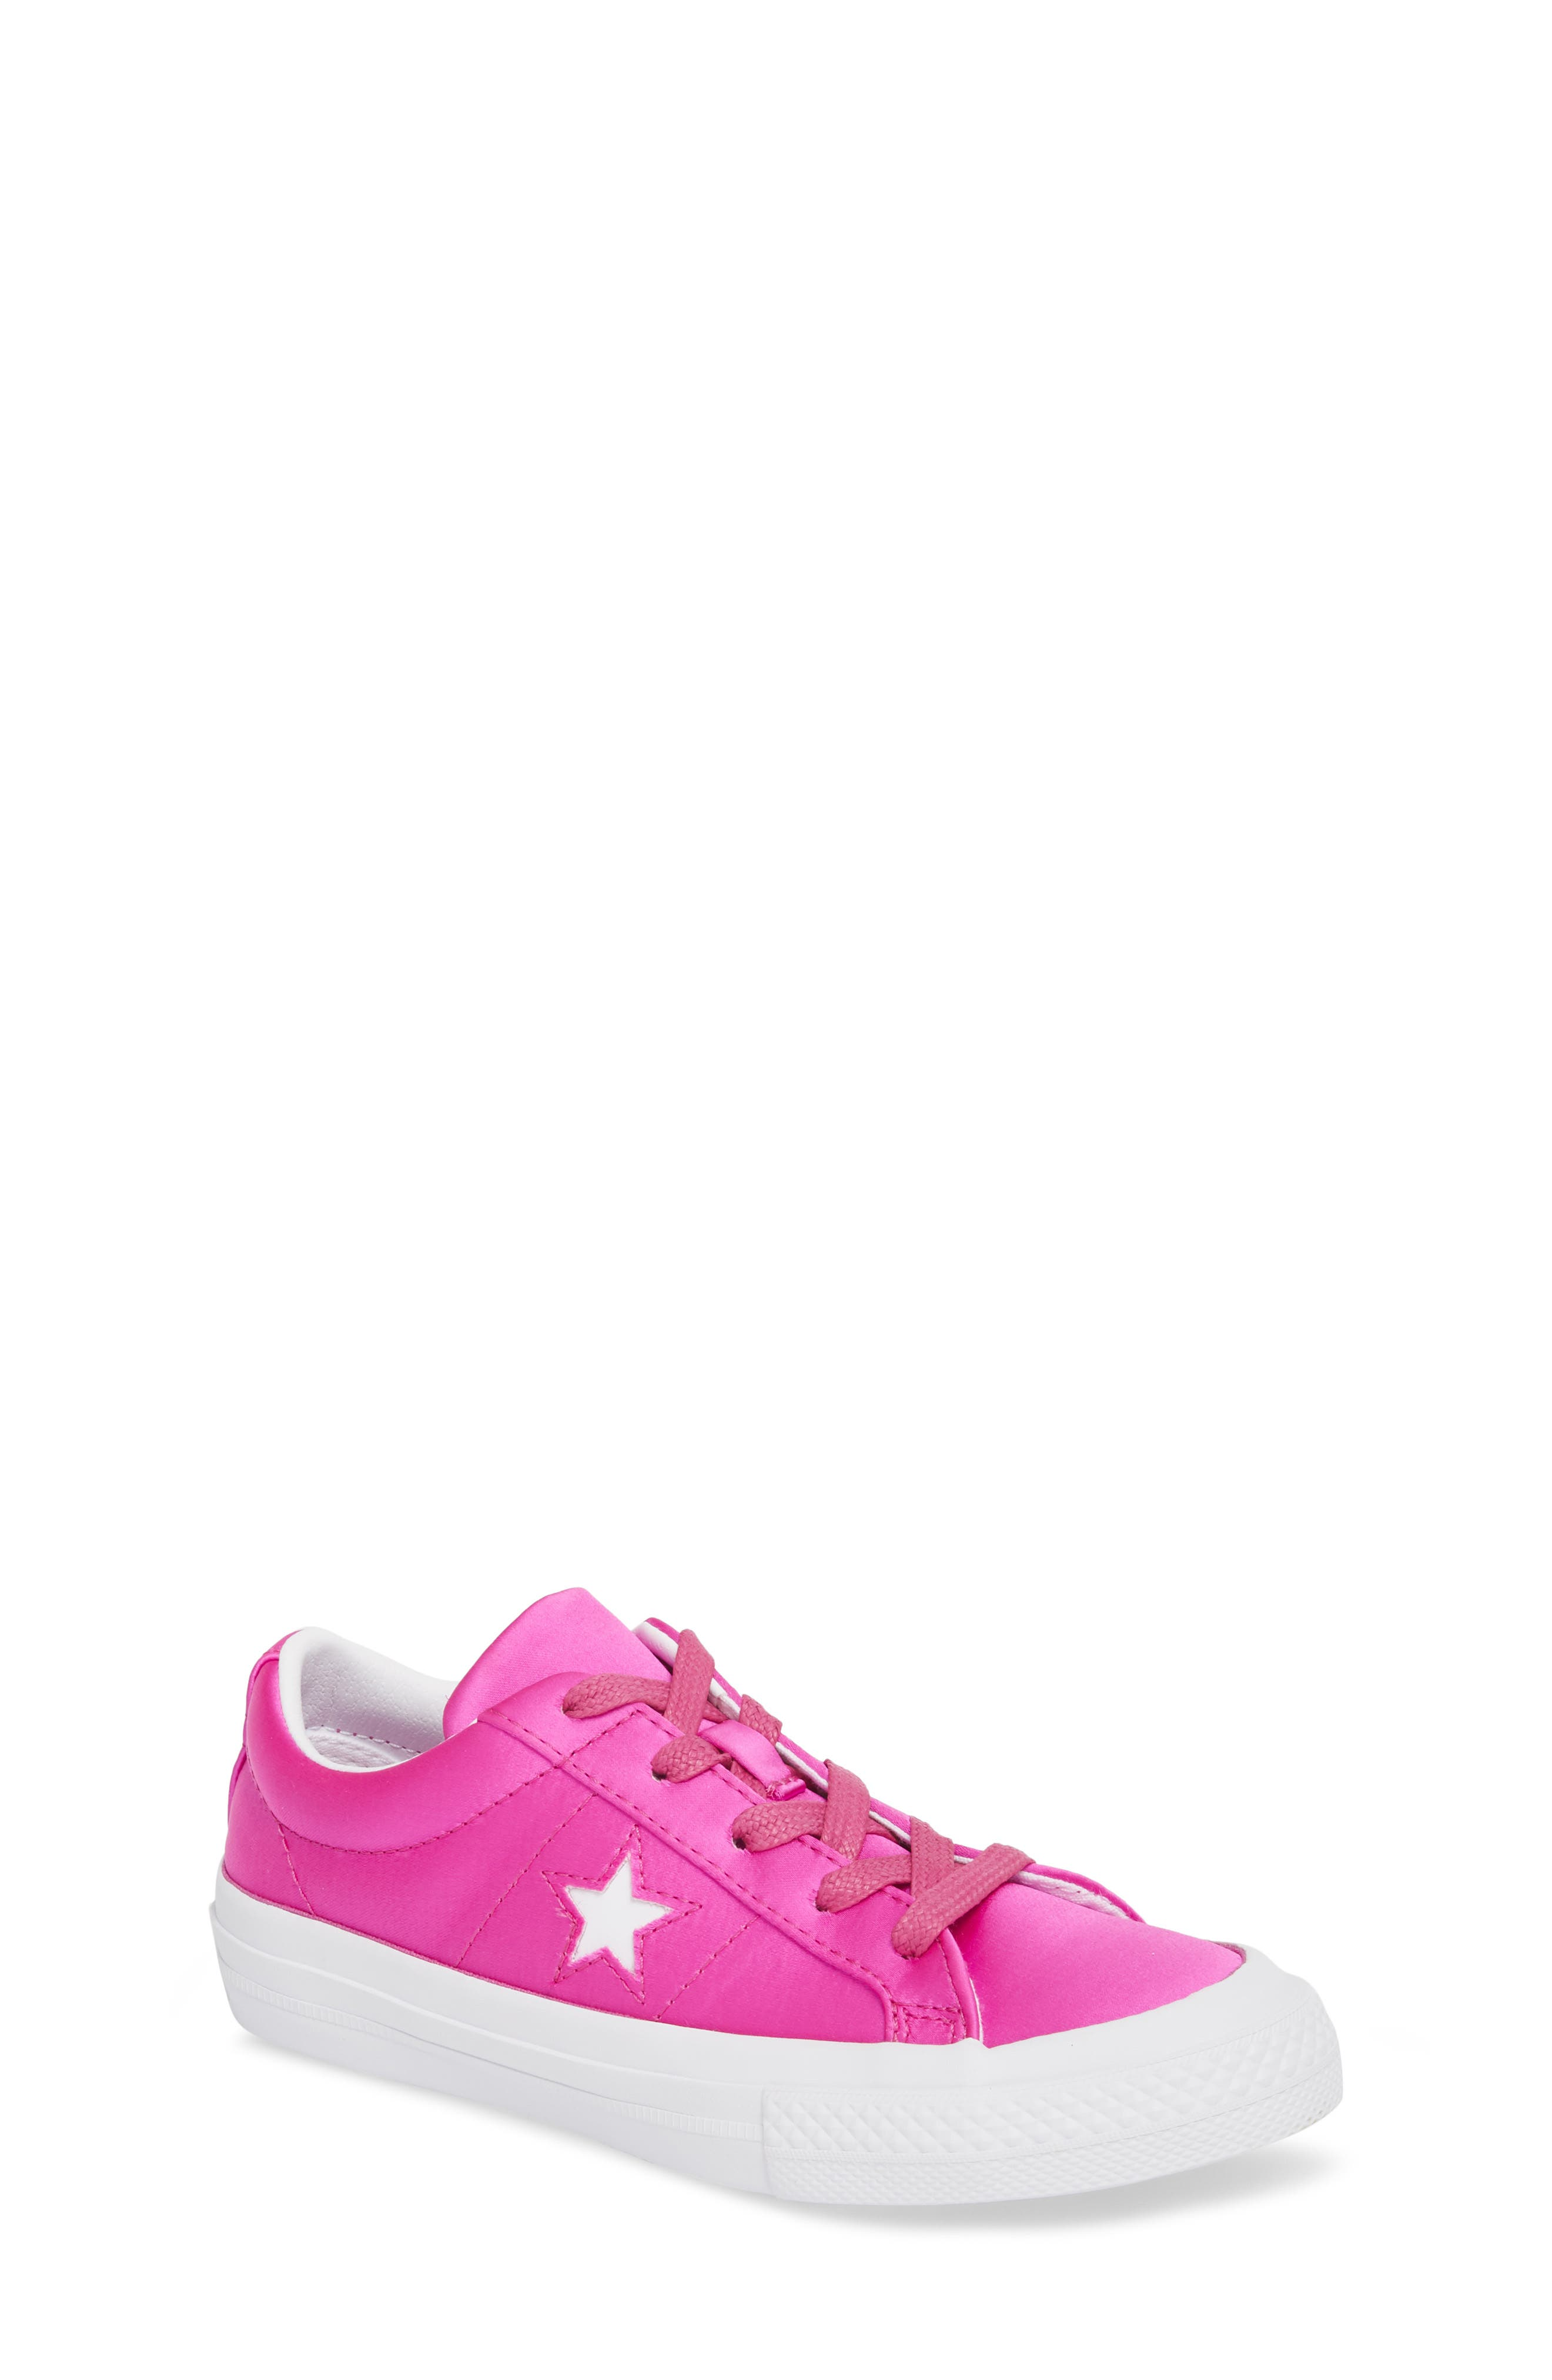 Chuck Taylor<sup>®</sup> All Star<sup>®</sup> One Star Satin Low Top Sneaker,                         Main,                         color, Hyper Magenta